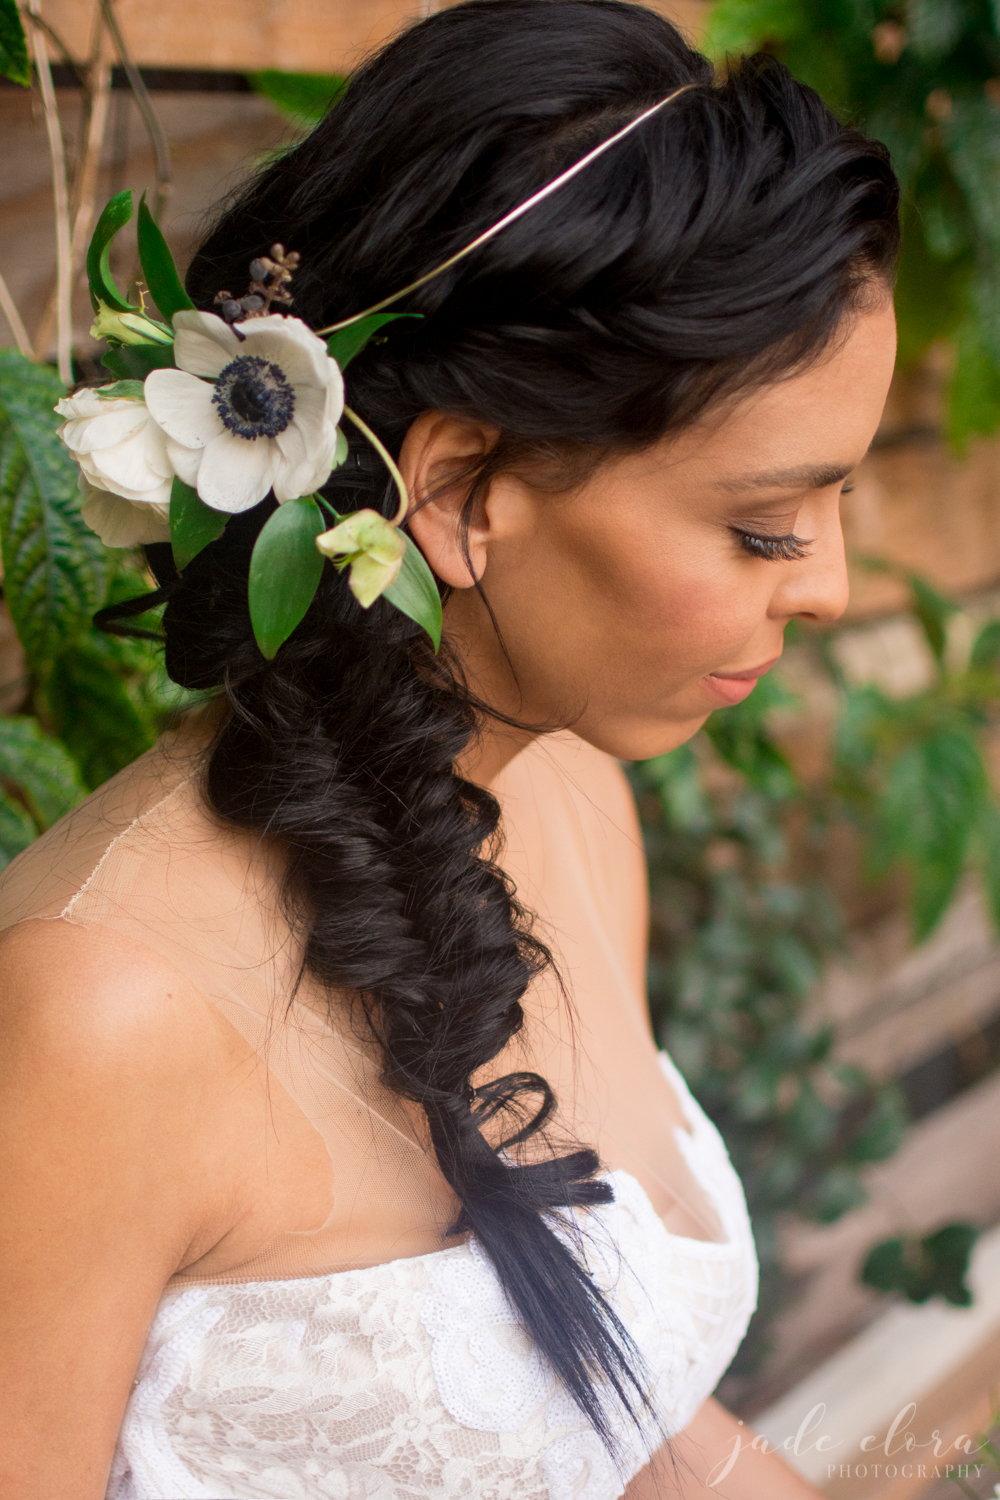 Hair + Makeup by Page Beauty, Florals by Barnes Botanicals